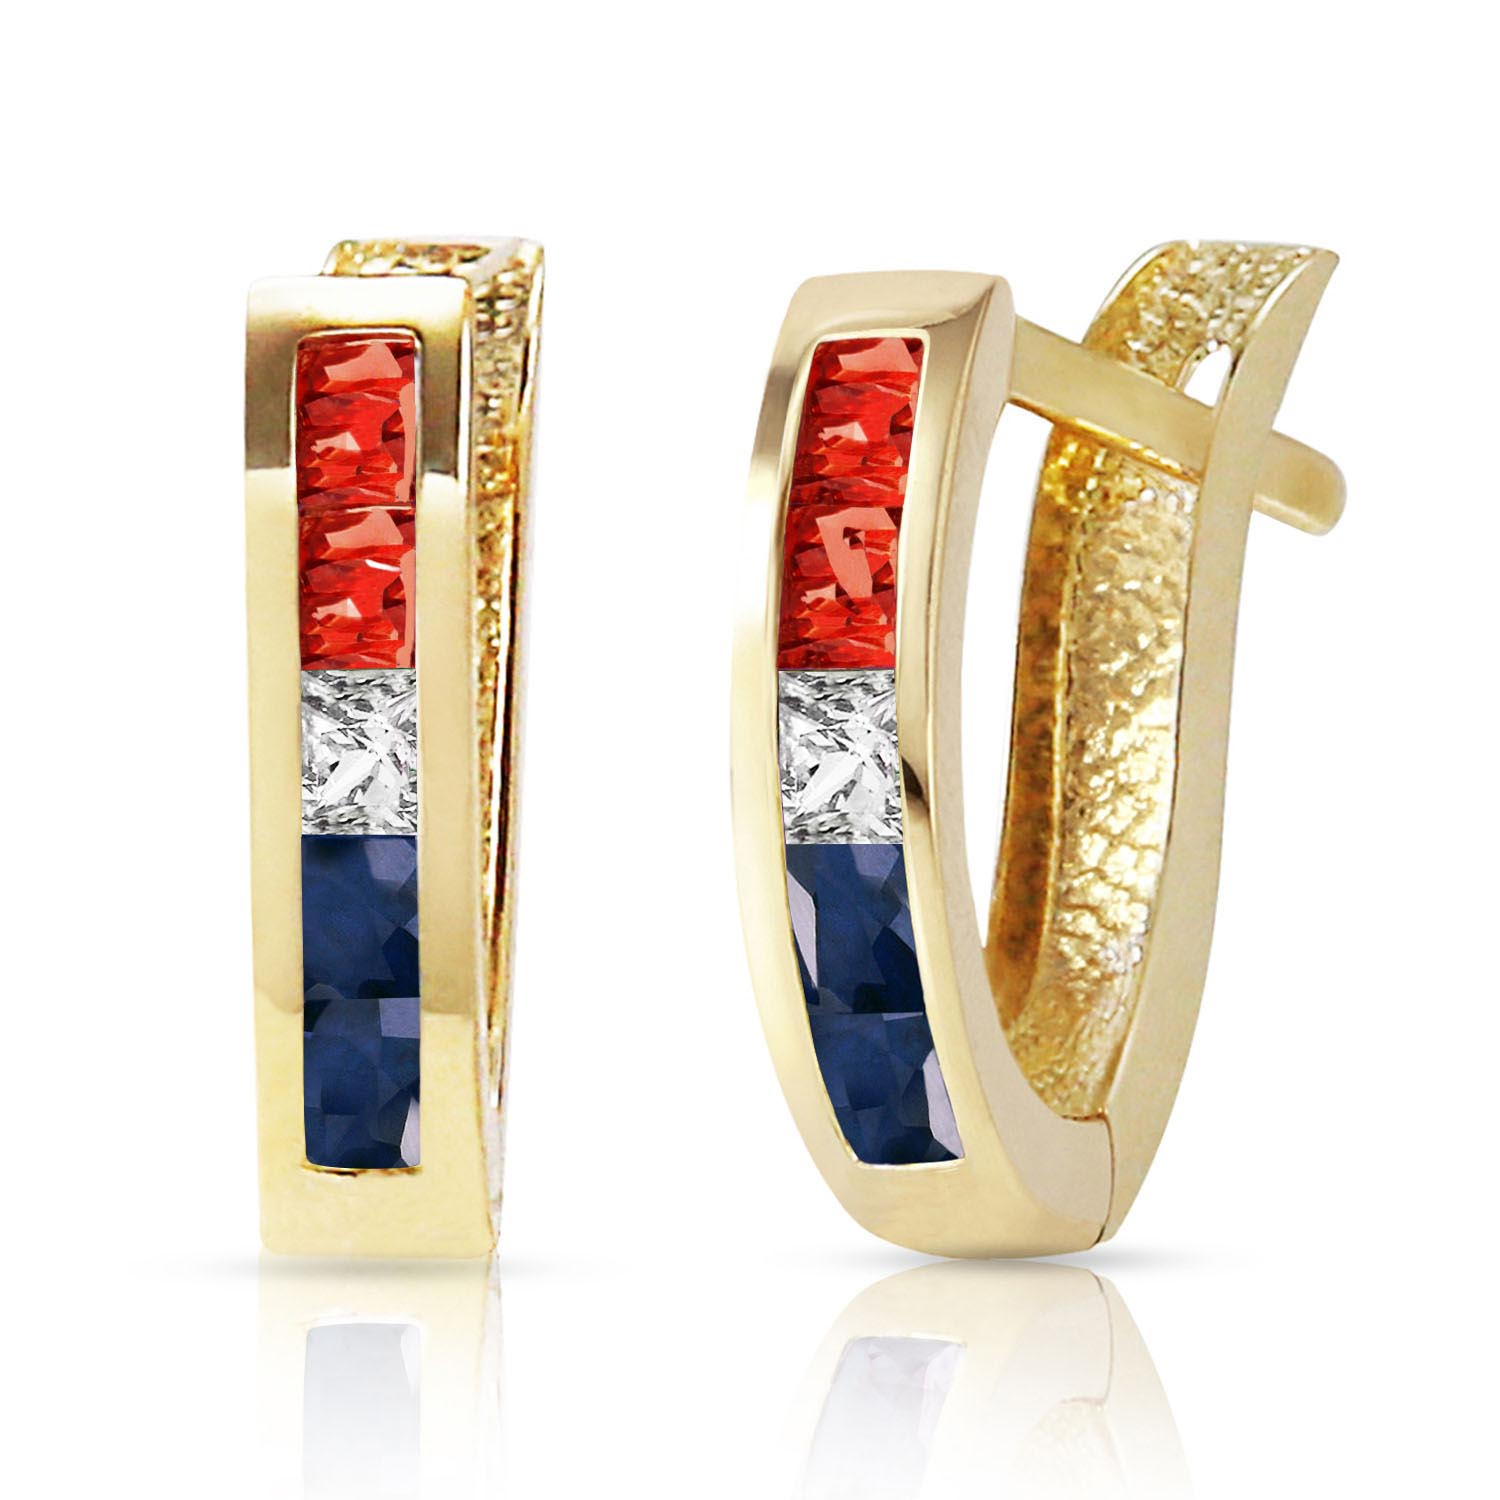 Gemstone Acute Huggie Earrings 1.28ctw in 9ct Gold